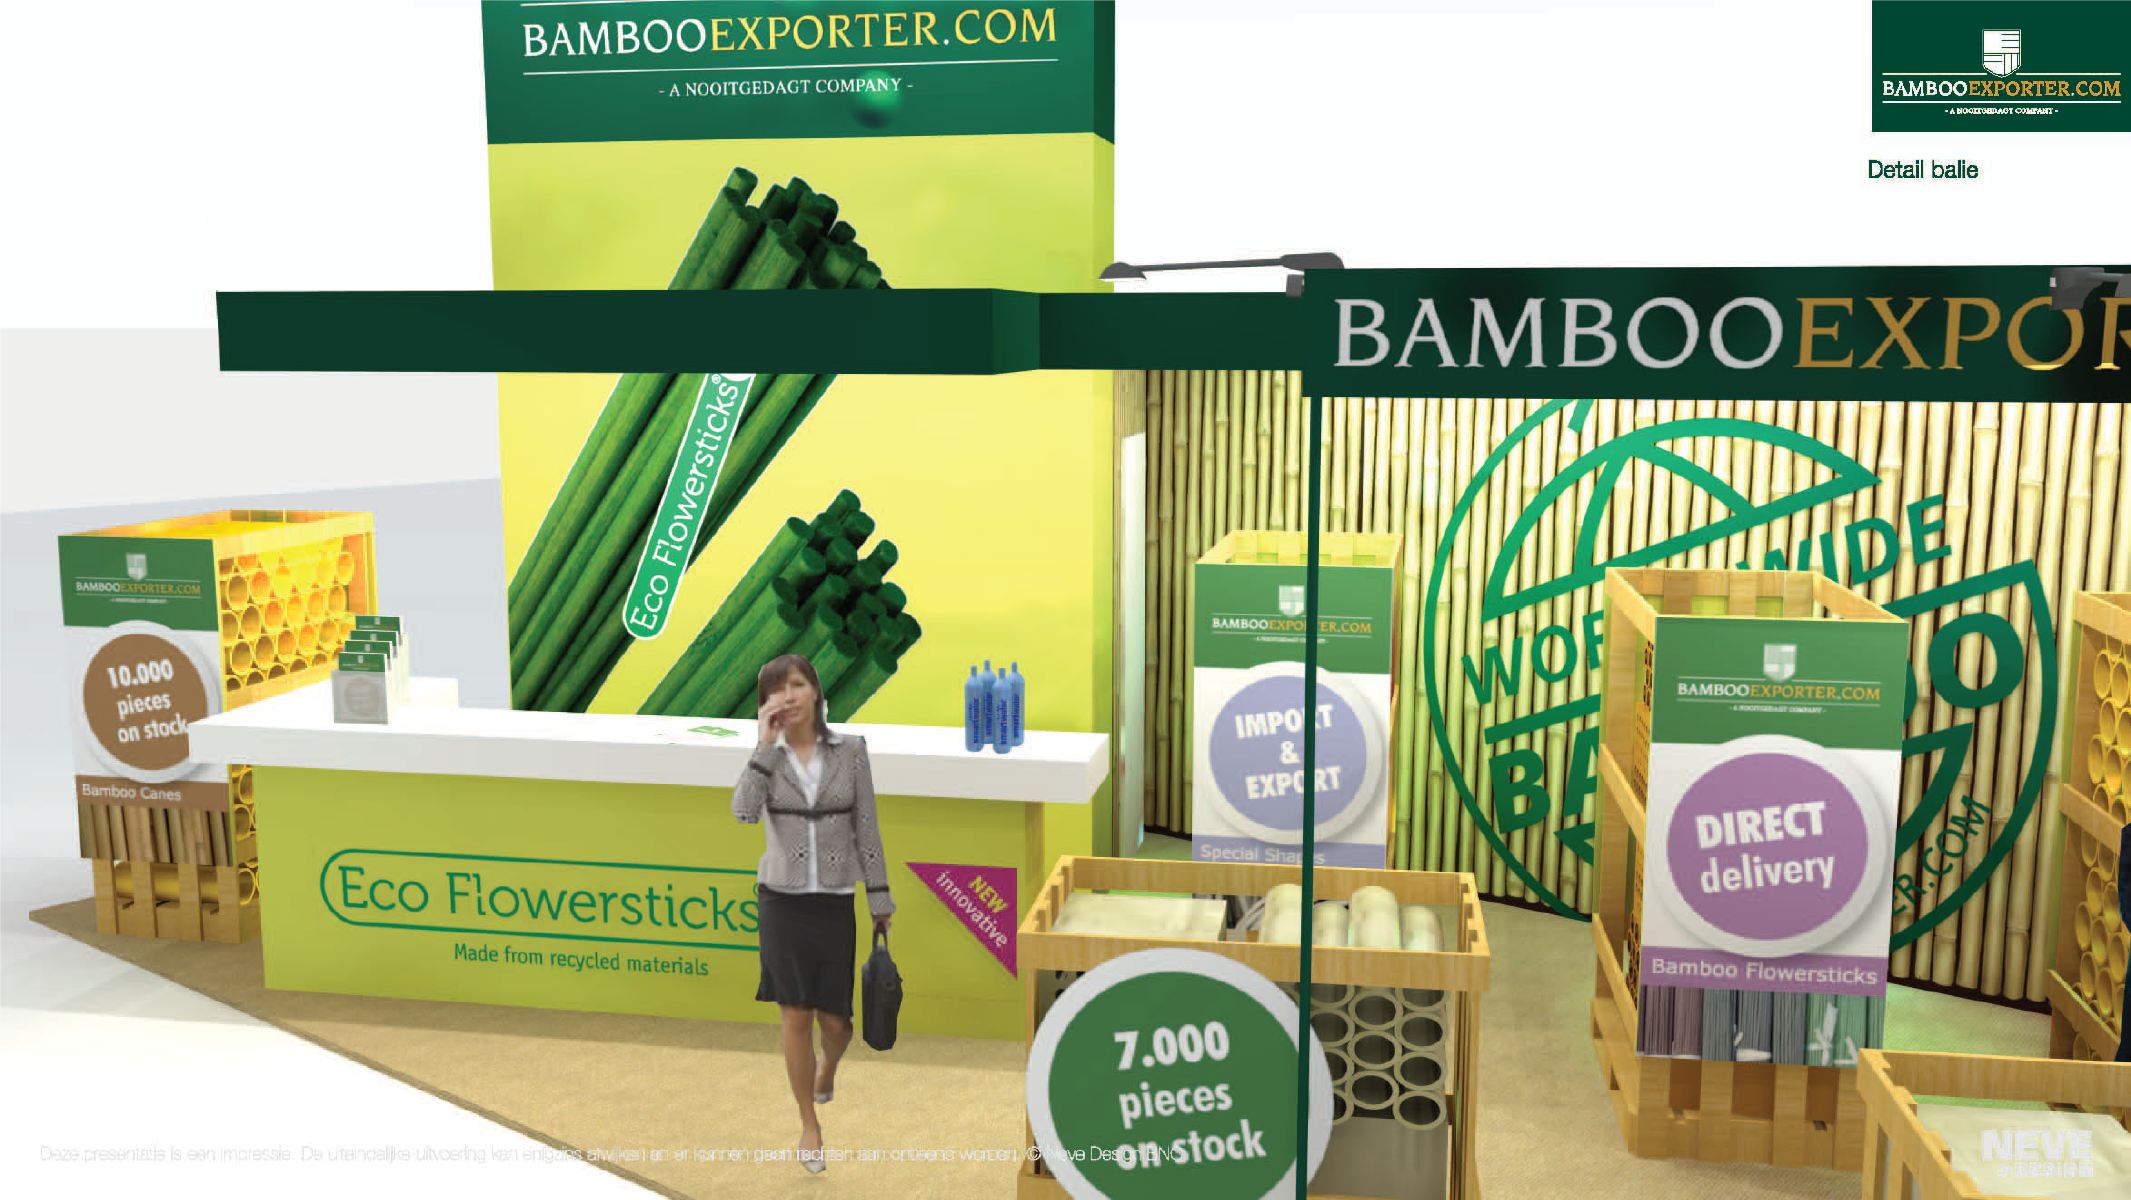 Bamboo_Exporter-stand-Project-09